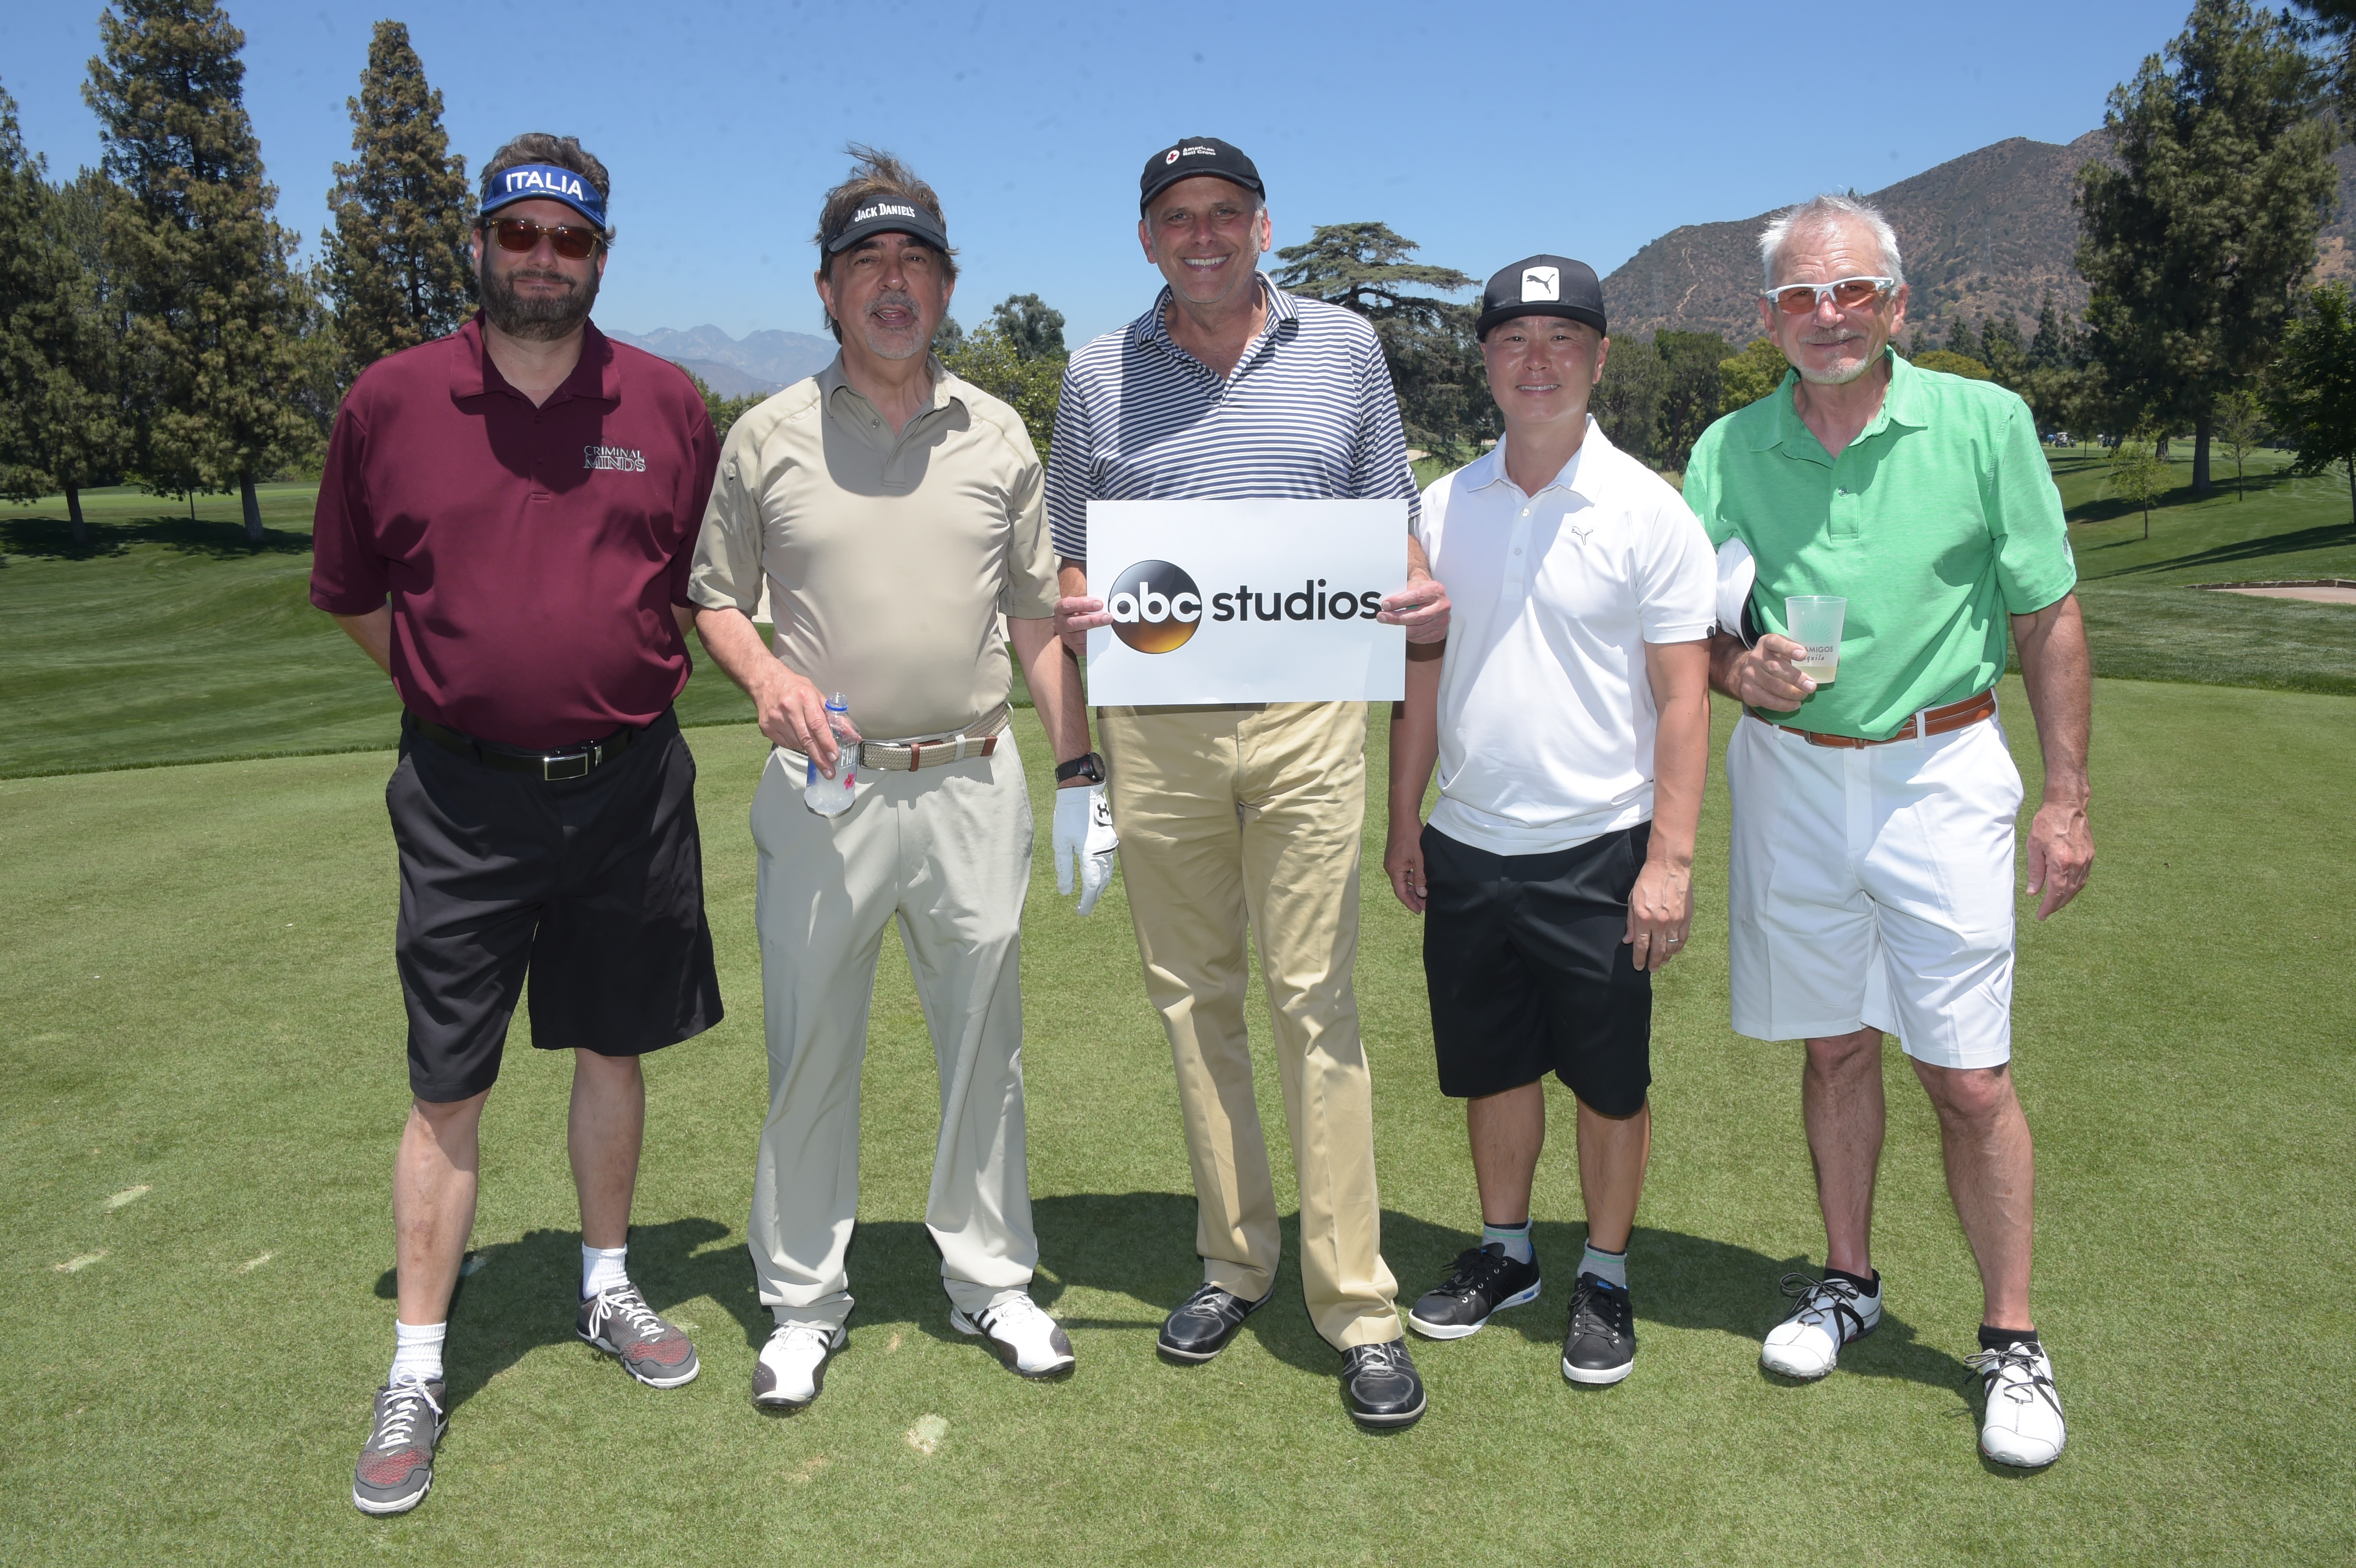 Dan Ramm, Joe Mantegna, Kurt Fuller, CS Lee and David Leisure of Team ABC Studios play at the Screen Actors Guild Foundation's 6th Annual Los Angeles Golf Classic on June 8, 2015 in Burbank, California. (Photo by Jason Kempin/Getty Images for The Screen Actors Guild Foundation)